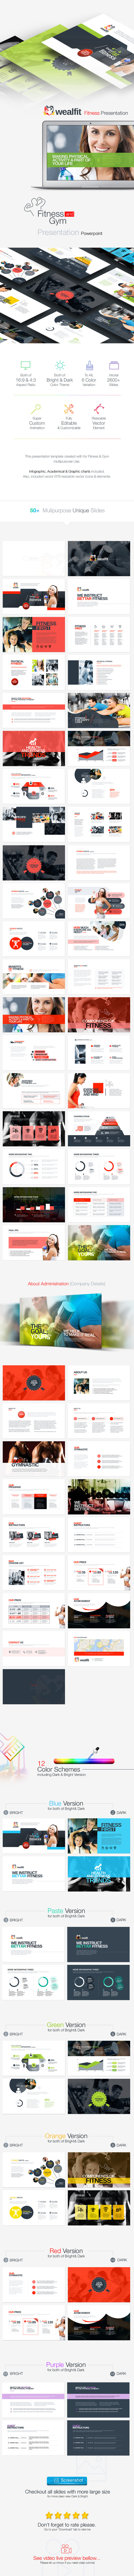 WealthFit Fitness Gym Powerpoint